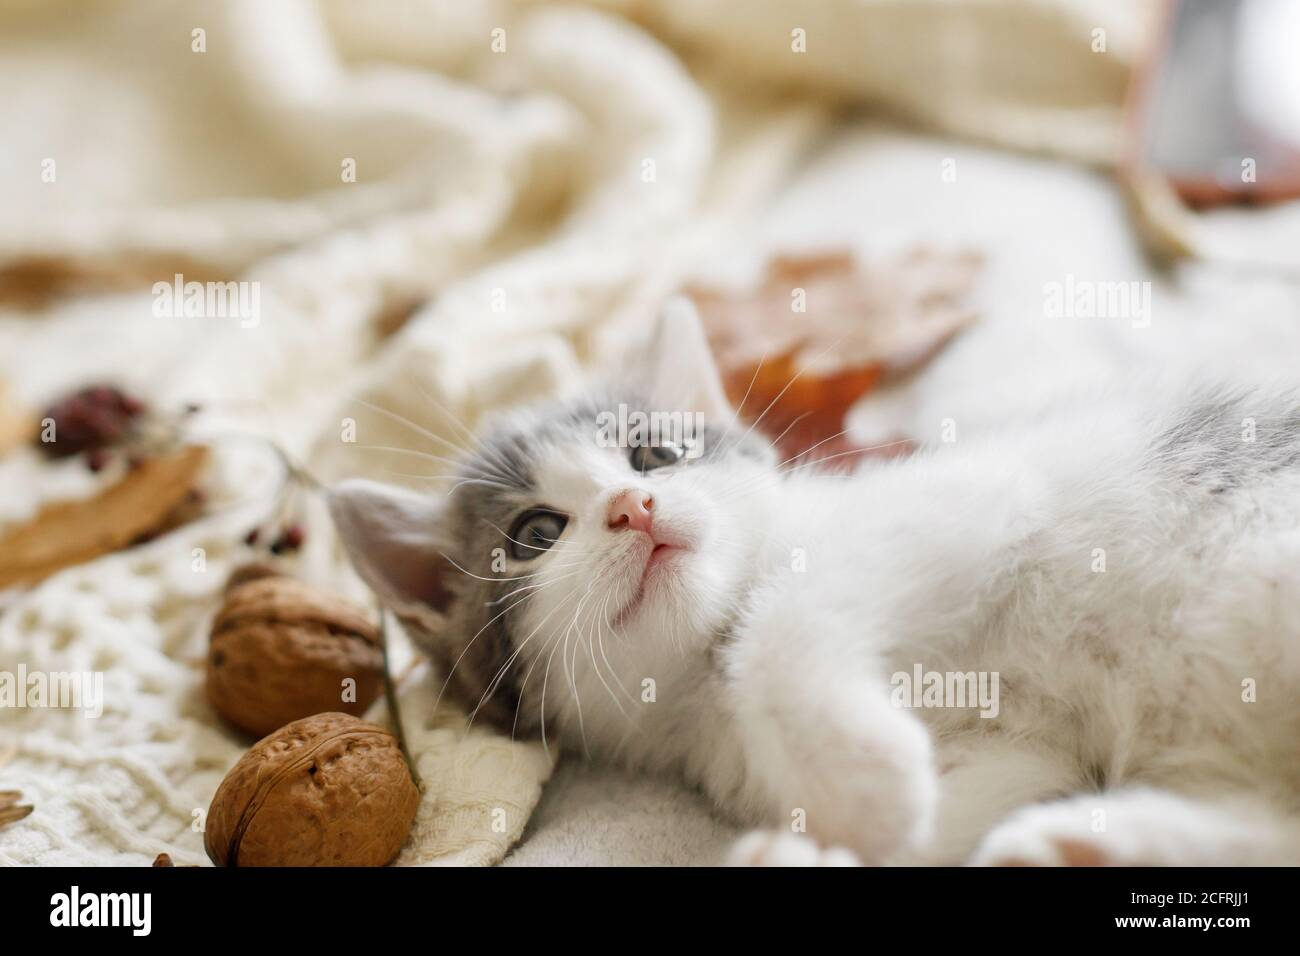 Adorable kitten playing with autumn leaves and acorns on soft blanket. Autumn cozy mood. Cute white and grey kitty playing with fall decorations on be Stock Photo